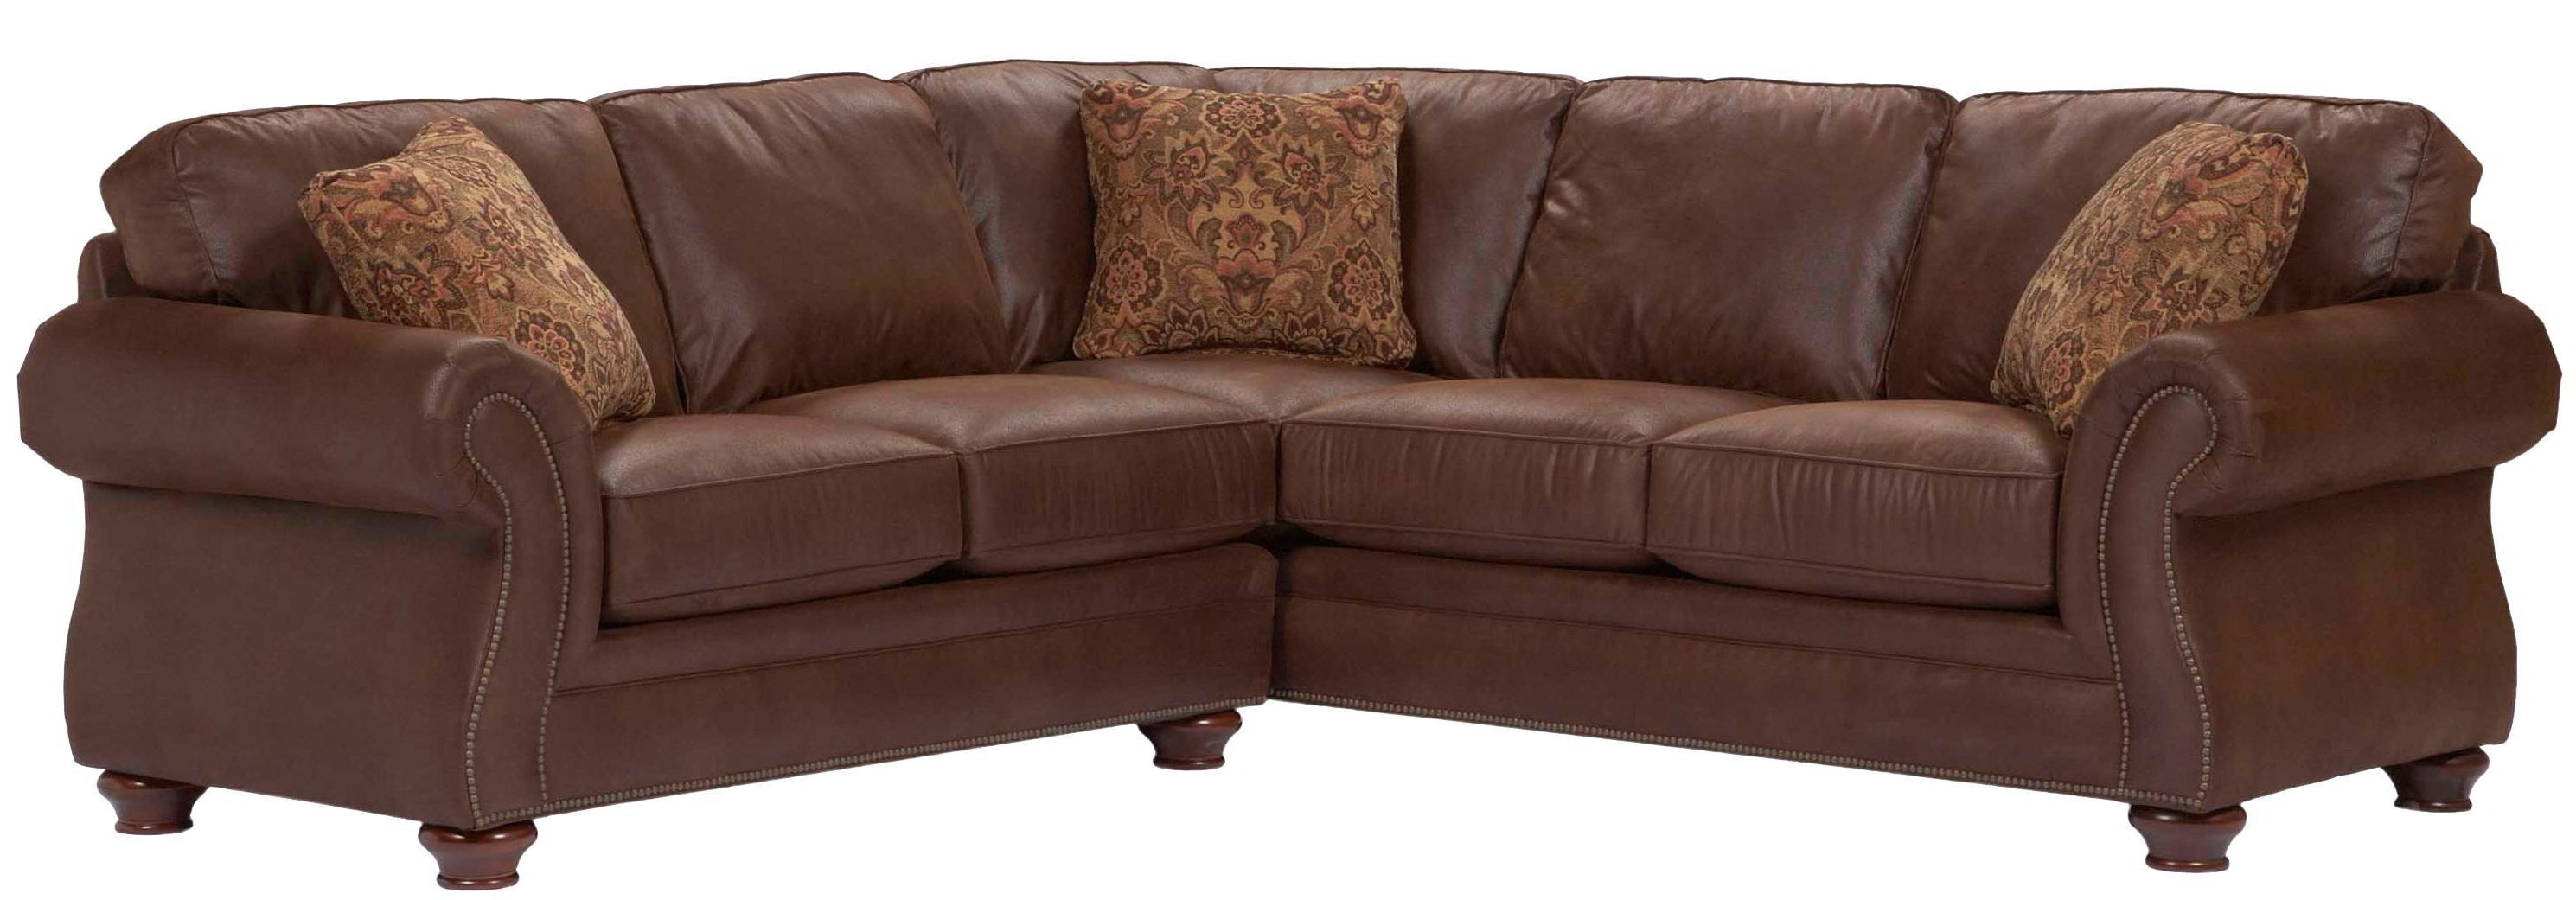 Broyhill Furniture Laramie 2 Piece Corner Sectional Sofa – Ahfa With Regard To Newest Broyhill Sectional Sofas (View 2 of 20)